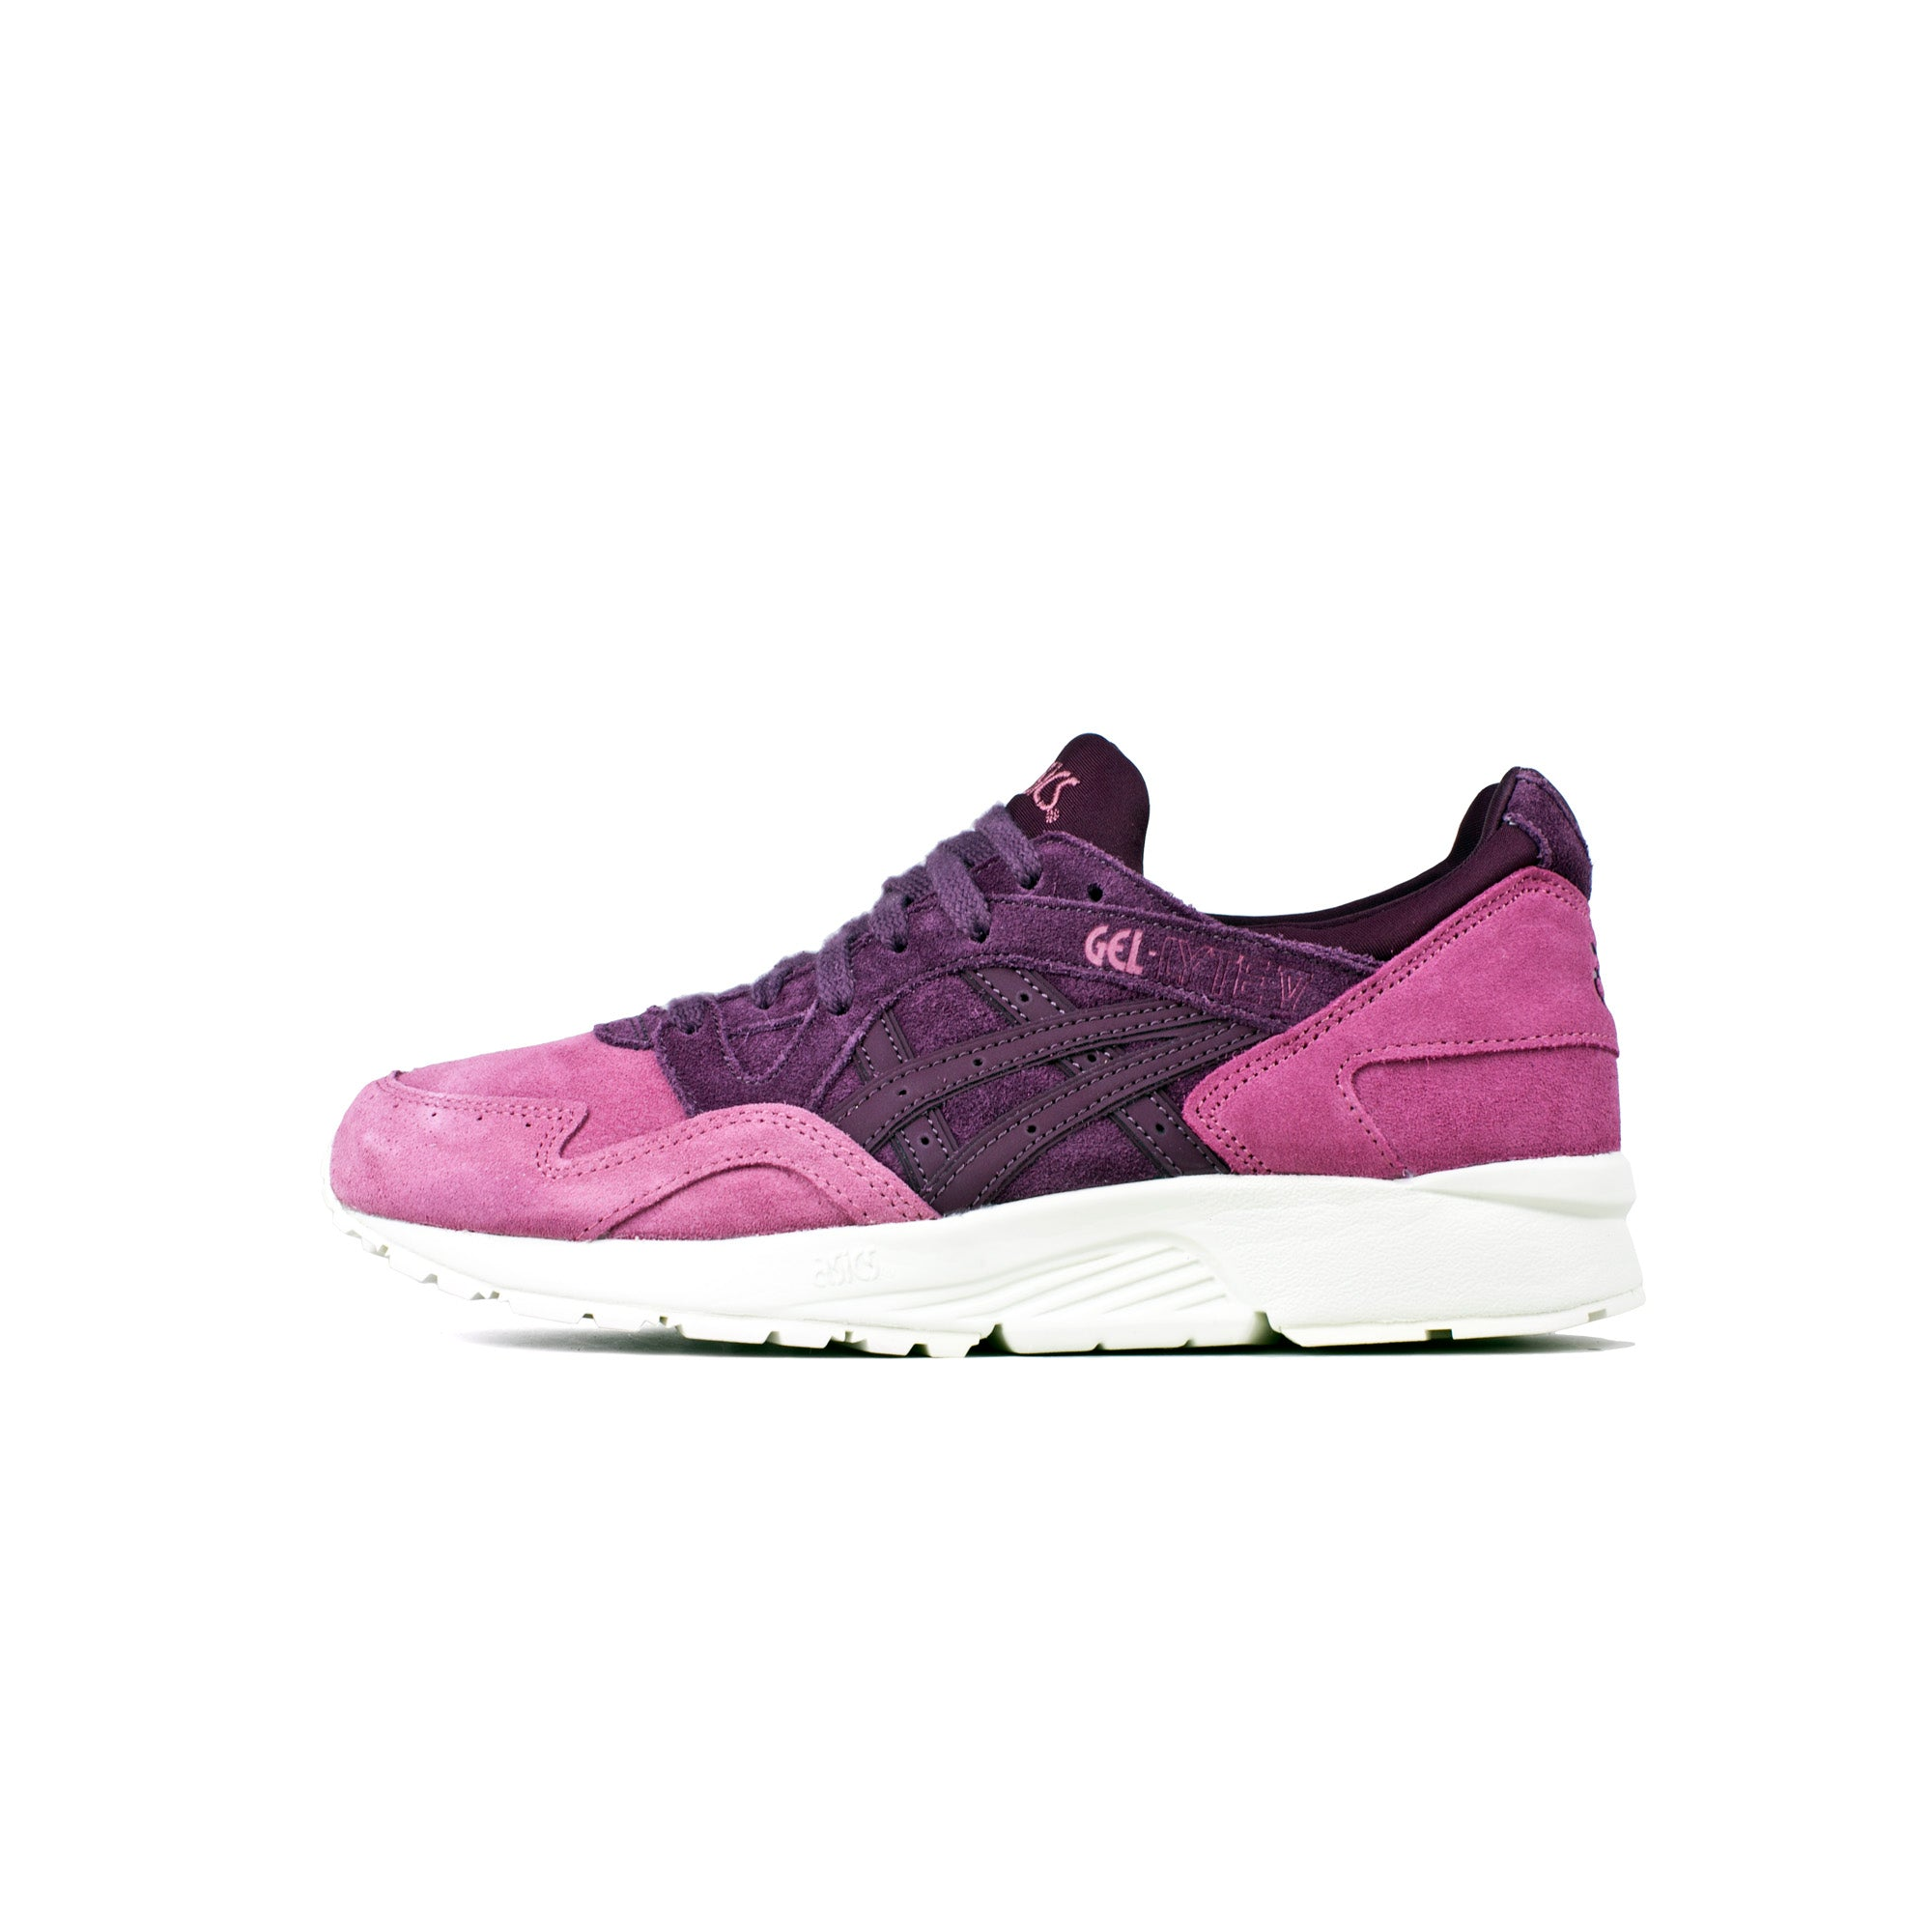 check out 4ae23 c7503 Asics Women's Gel-Lyte V